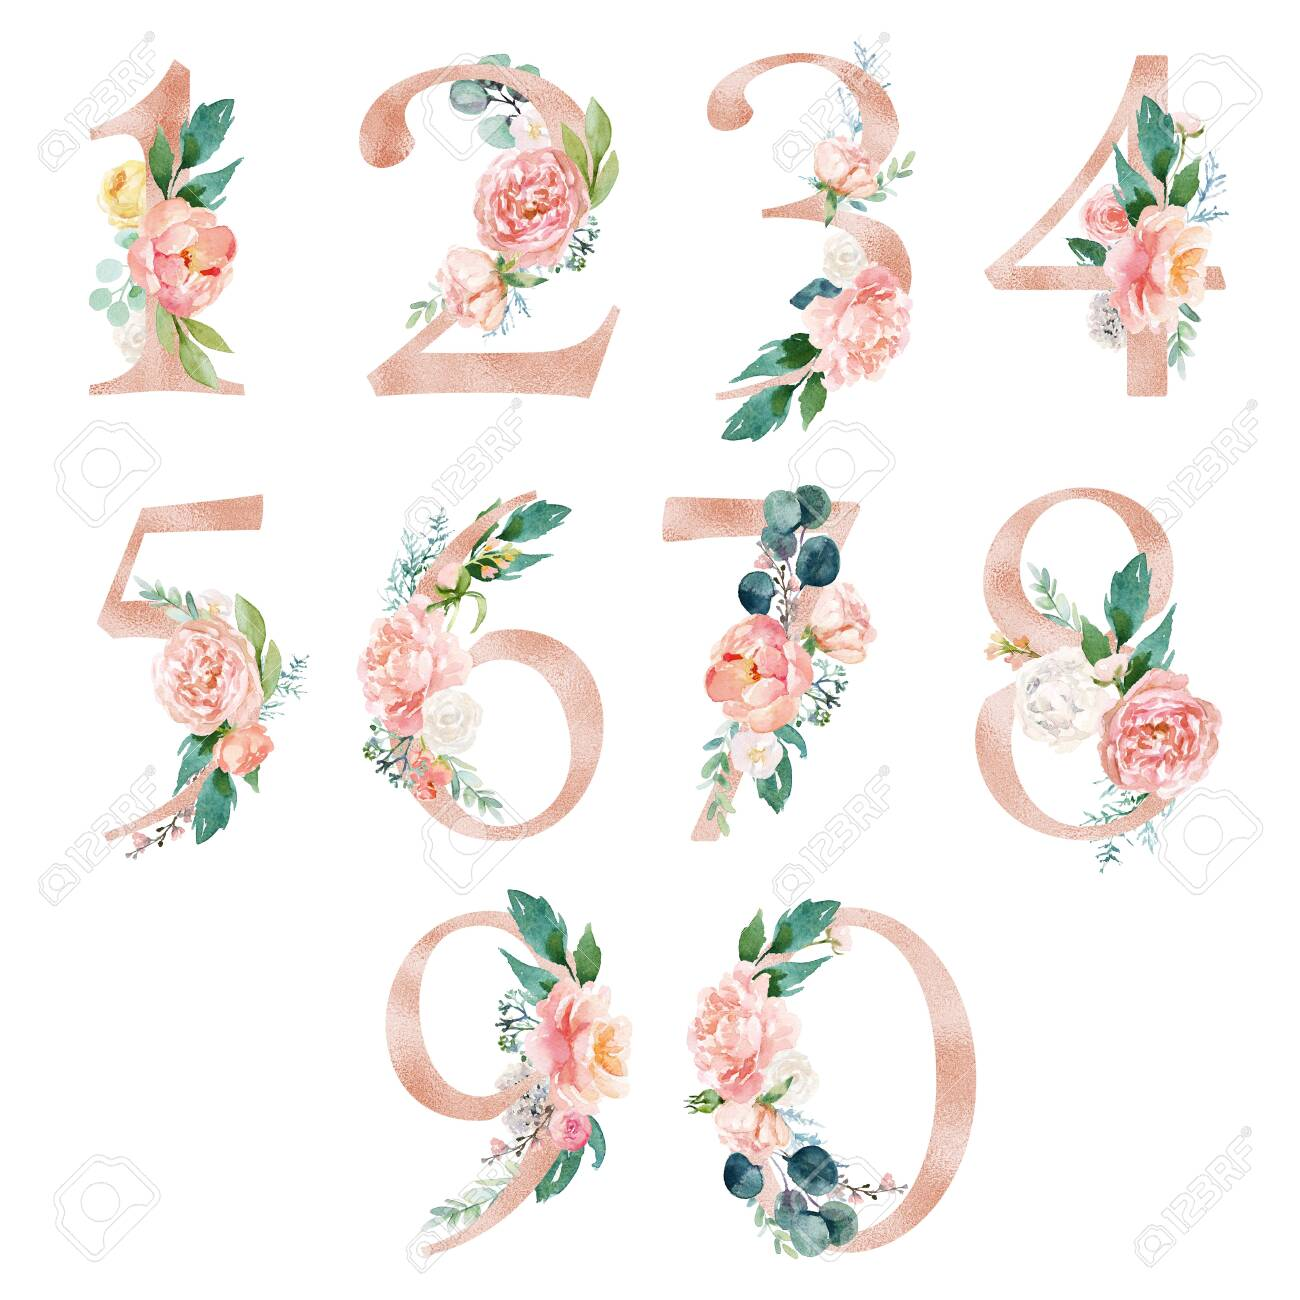 Peach cream / Blush Floral Number Set - digits 1, 2, 3, 4, 5, 6, 7, 8, 9, with flowers bouquet composition. Unique collection for wedding invites decoration & other concept ideas. - 135653343